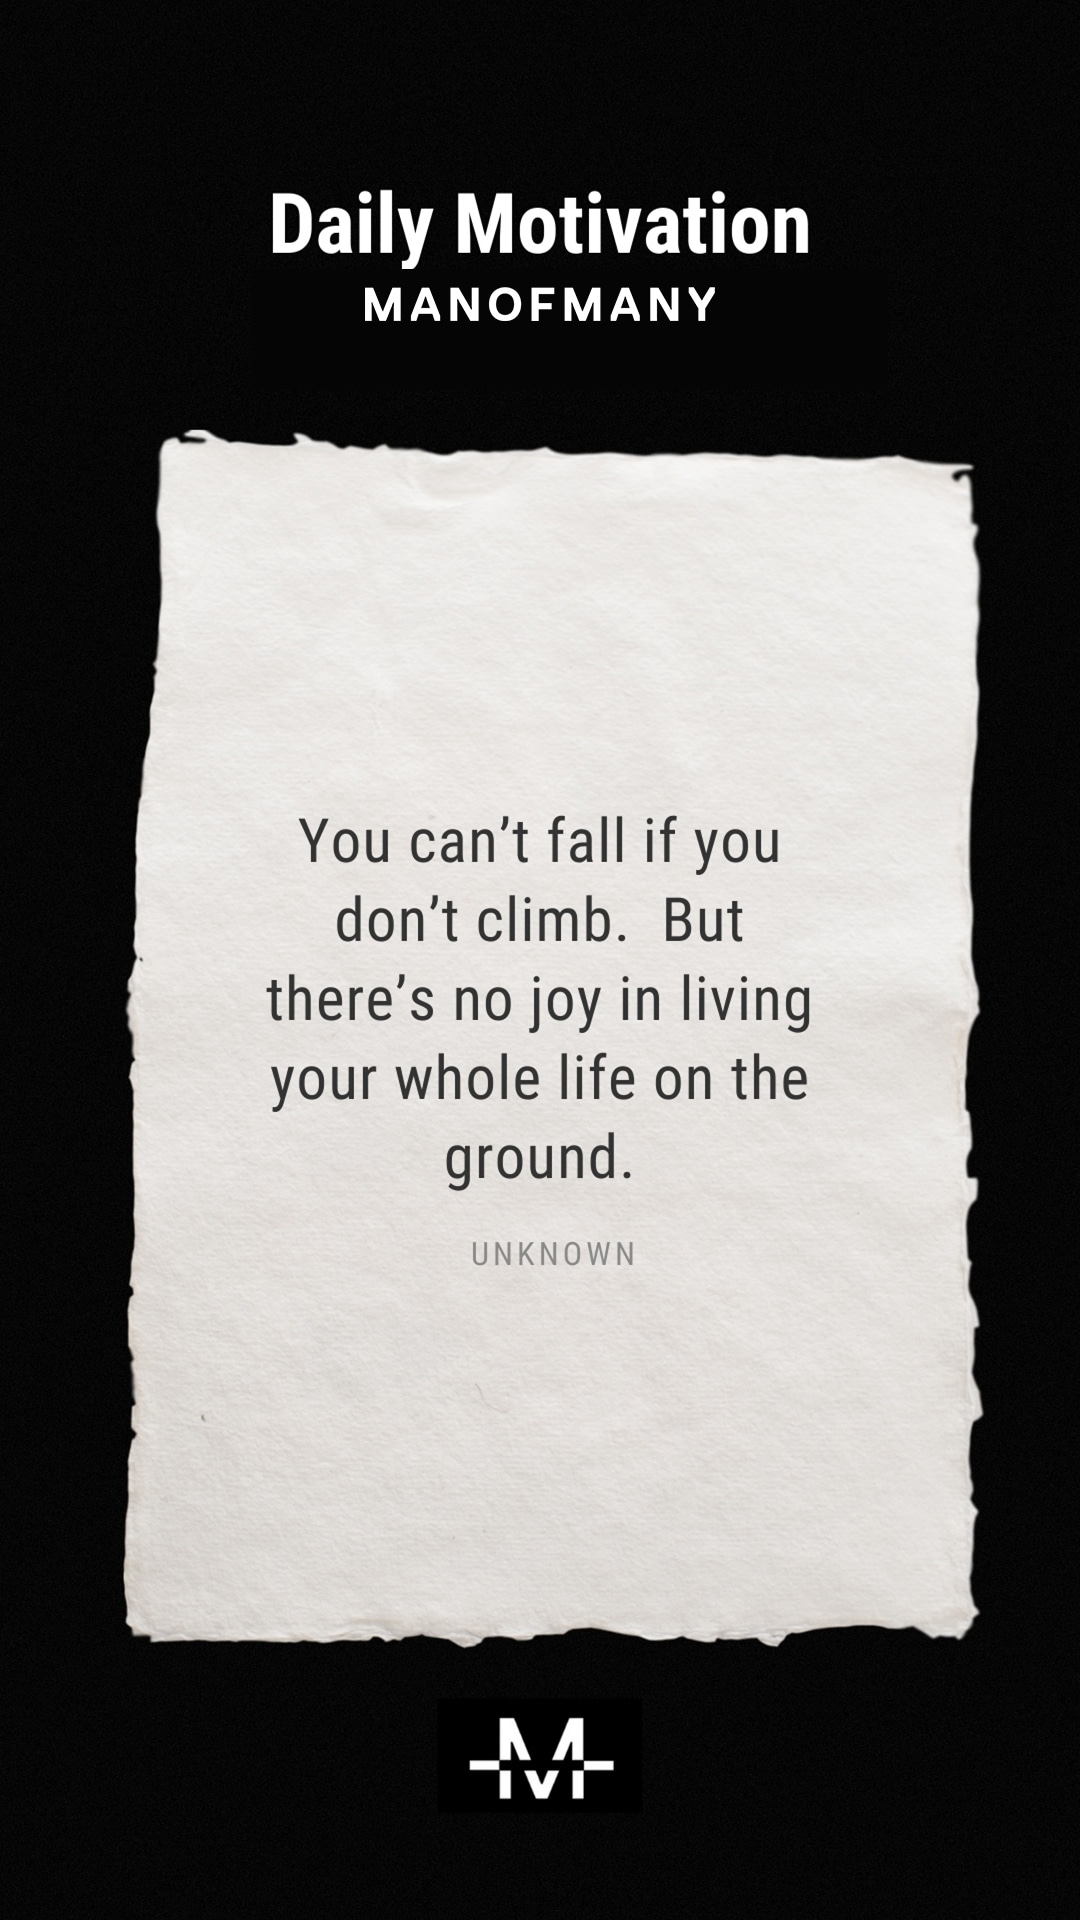 You can't fall if you don't climb. But there's no joy in living your whole life on the ground. –Unknown quote